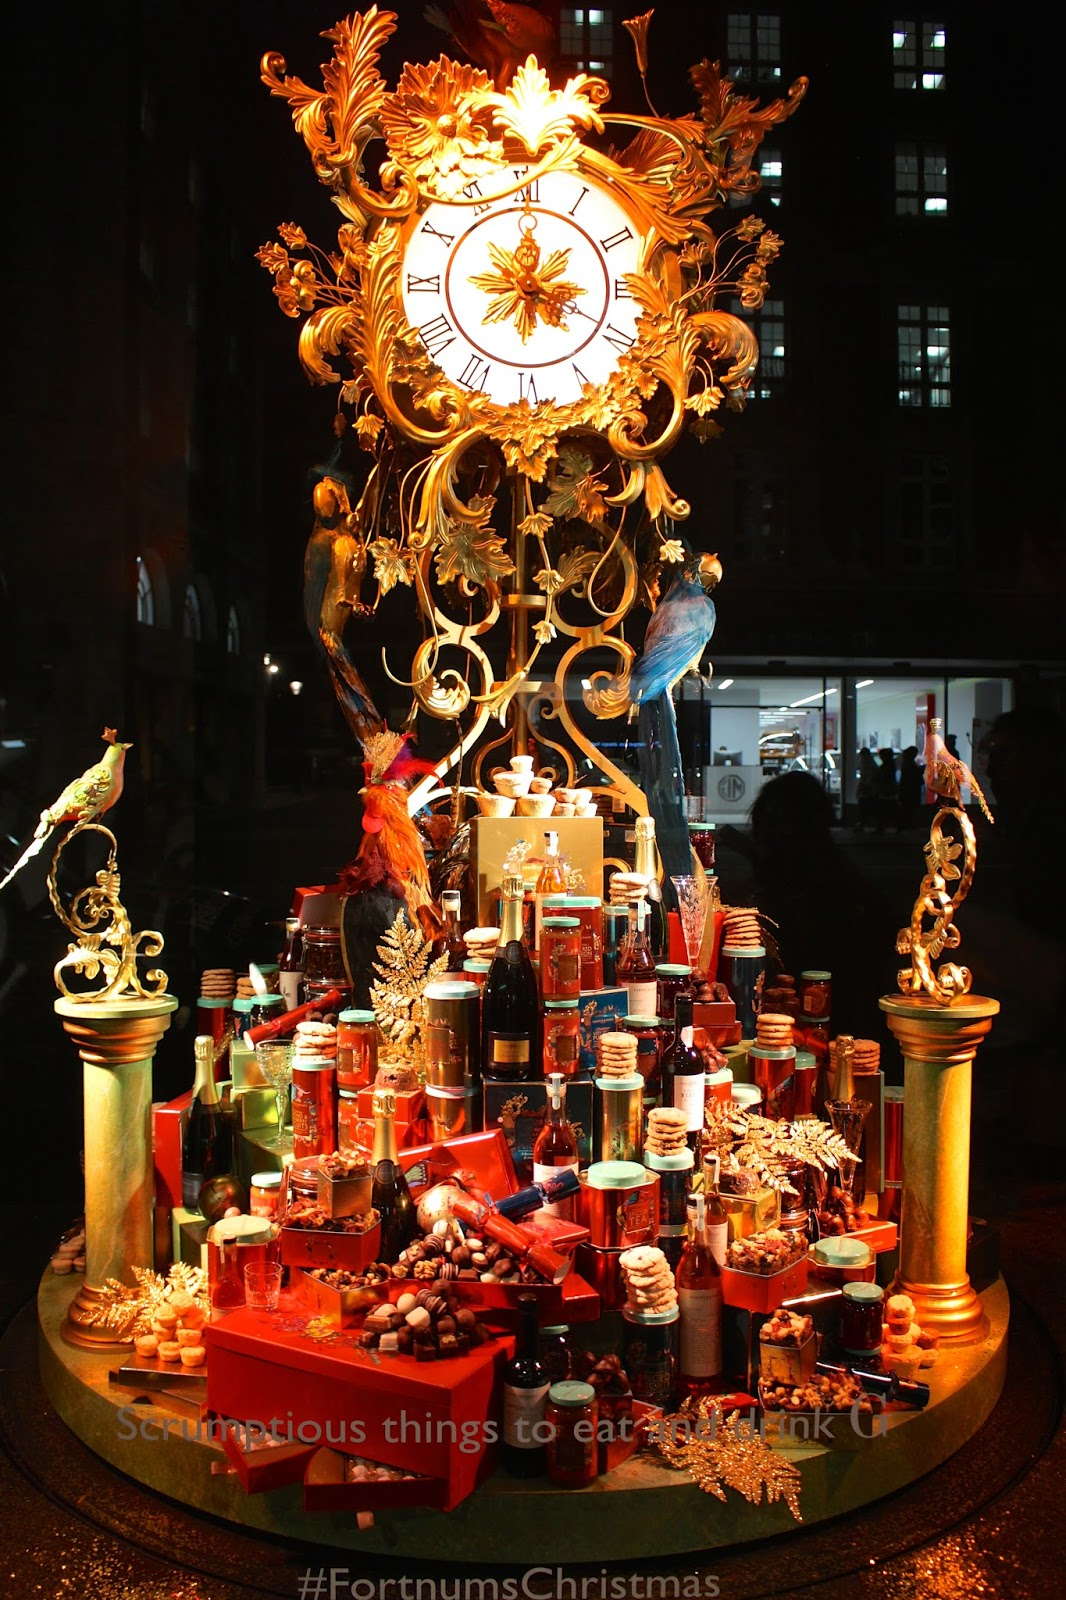 fortnum & mason christmas 2015 window display